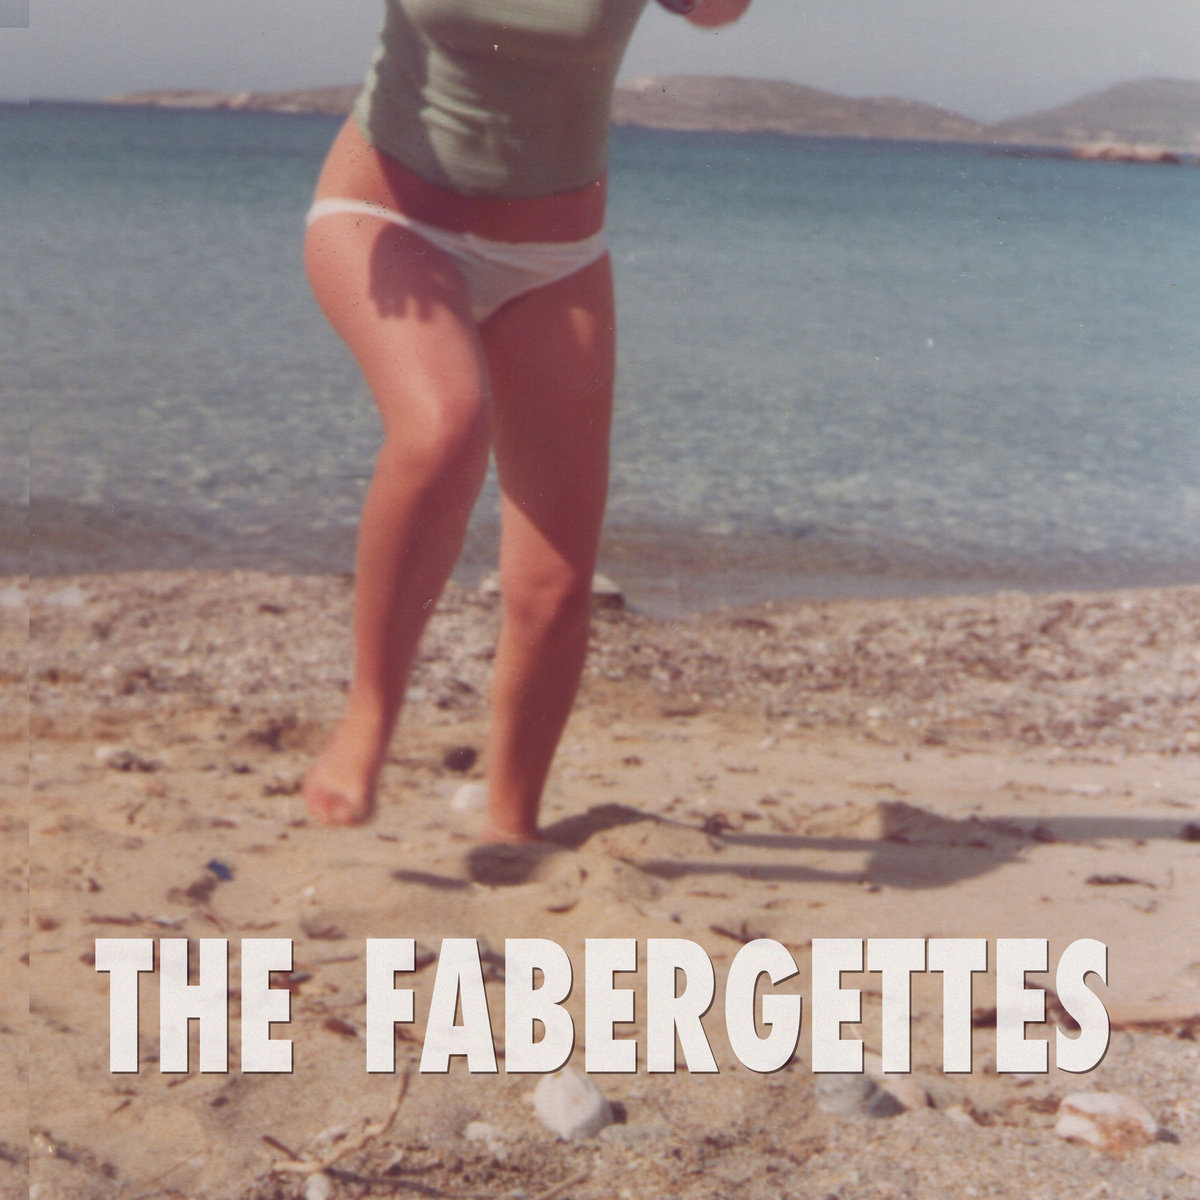 The fabergettes.jpg